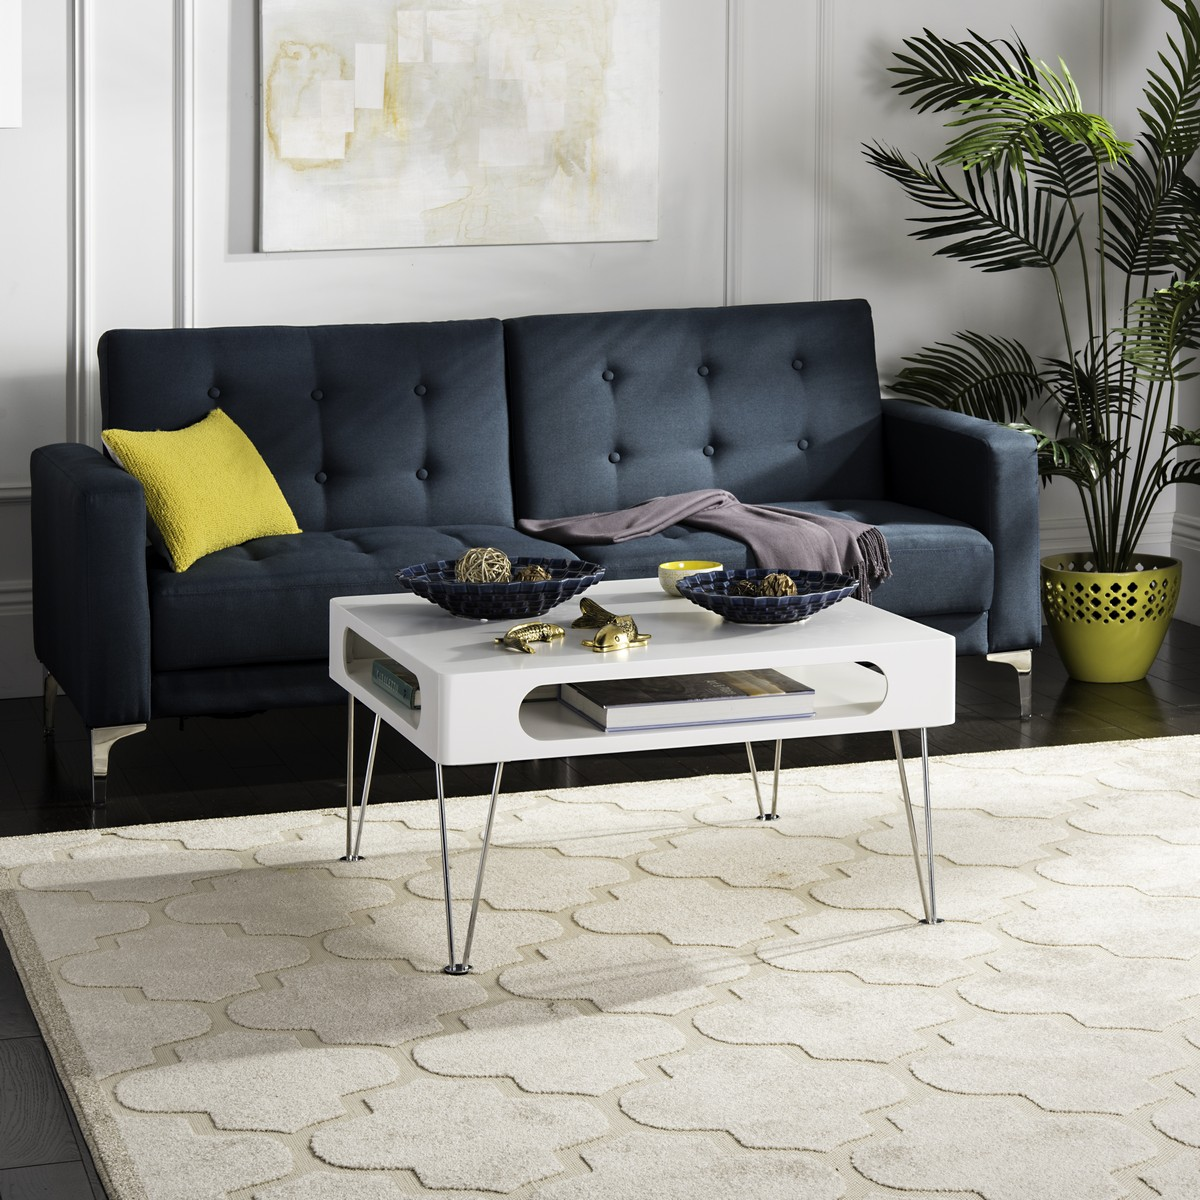 FOX2219A Coffee Tables - Furniture by Safavieh